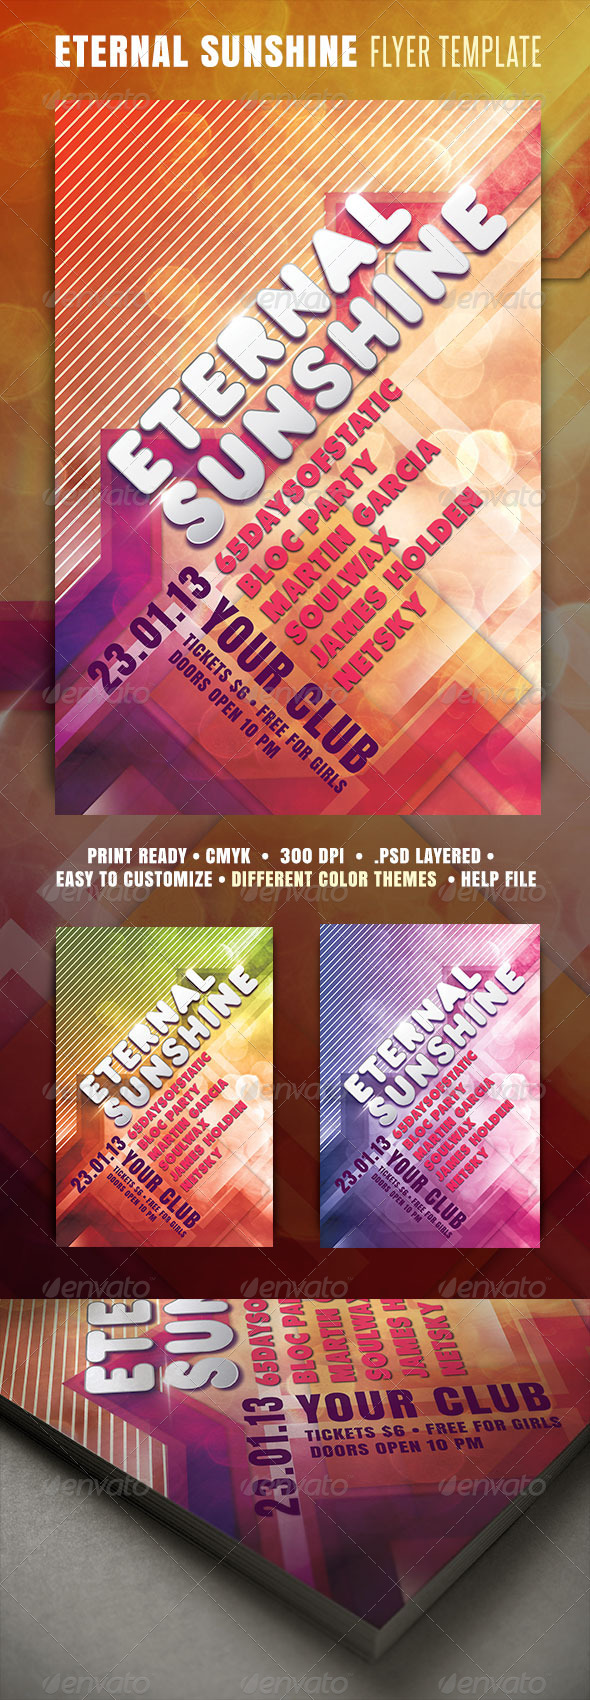 Eternal Sunshine Flyer - Clubs & Parties Events